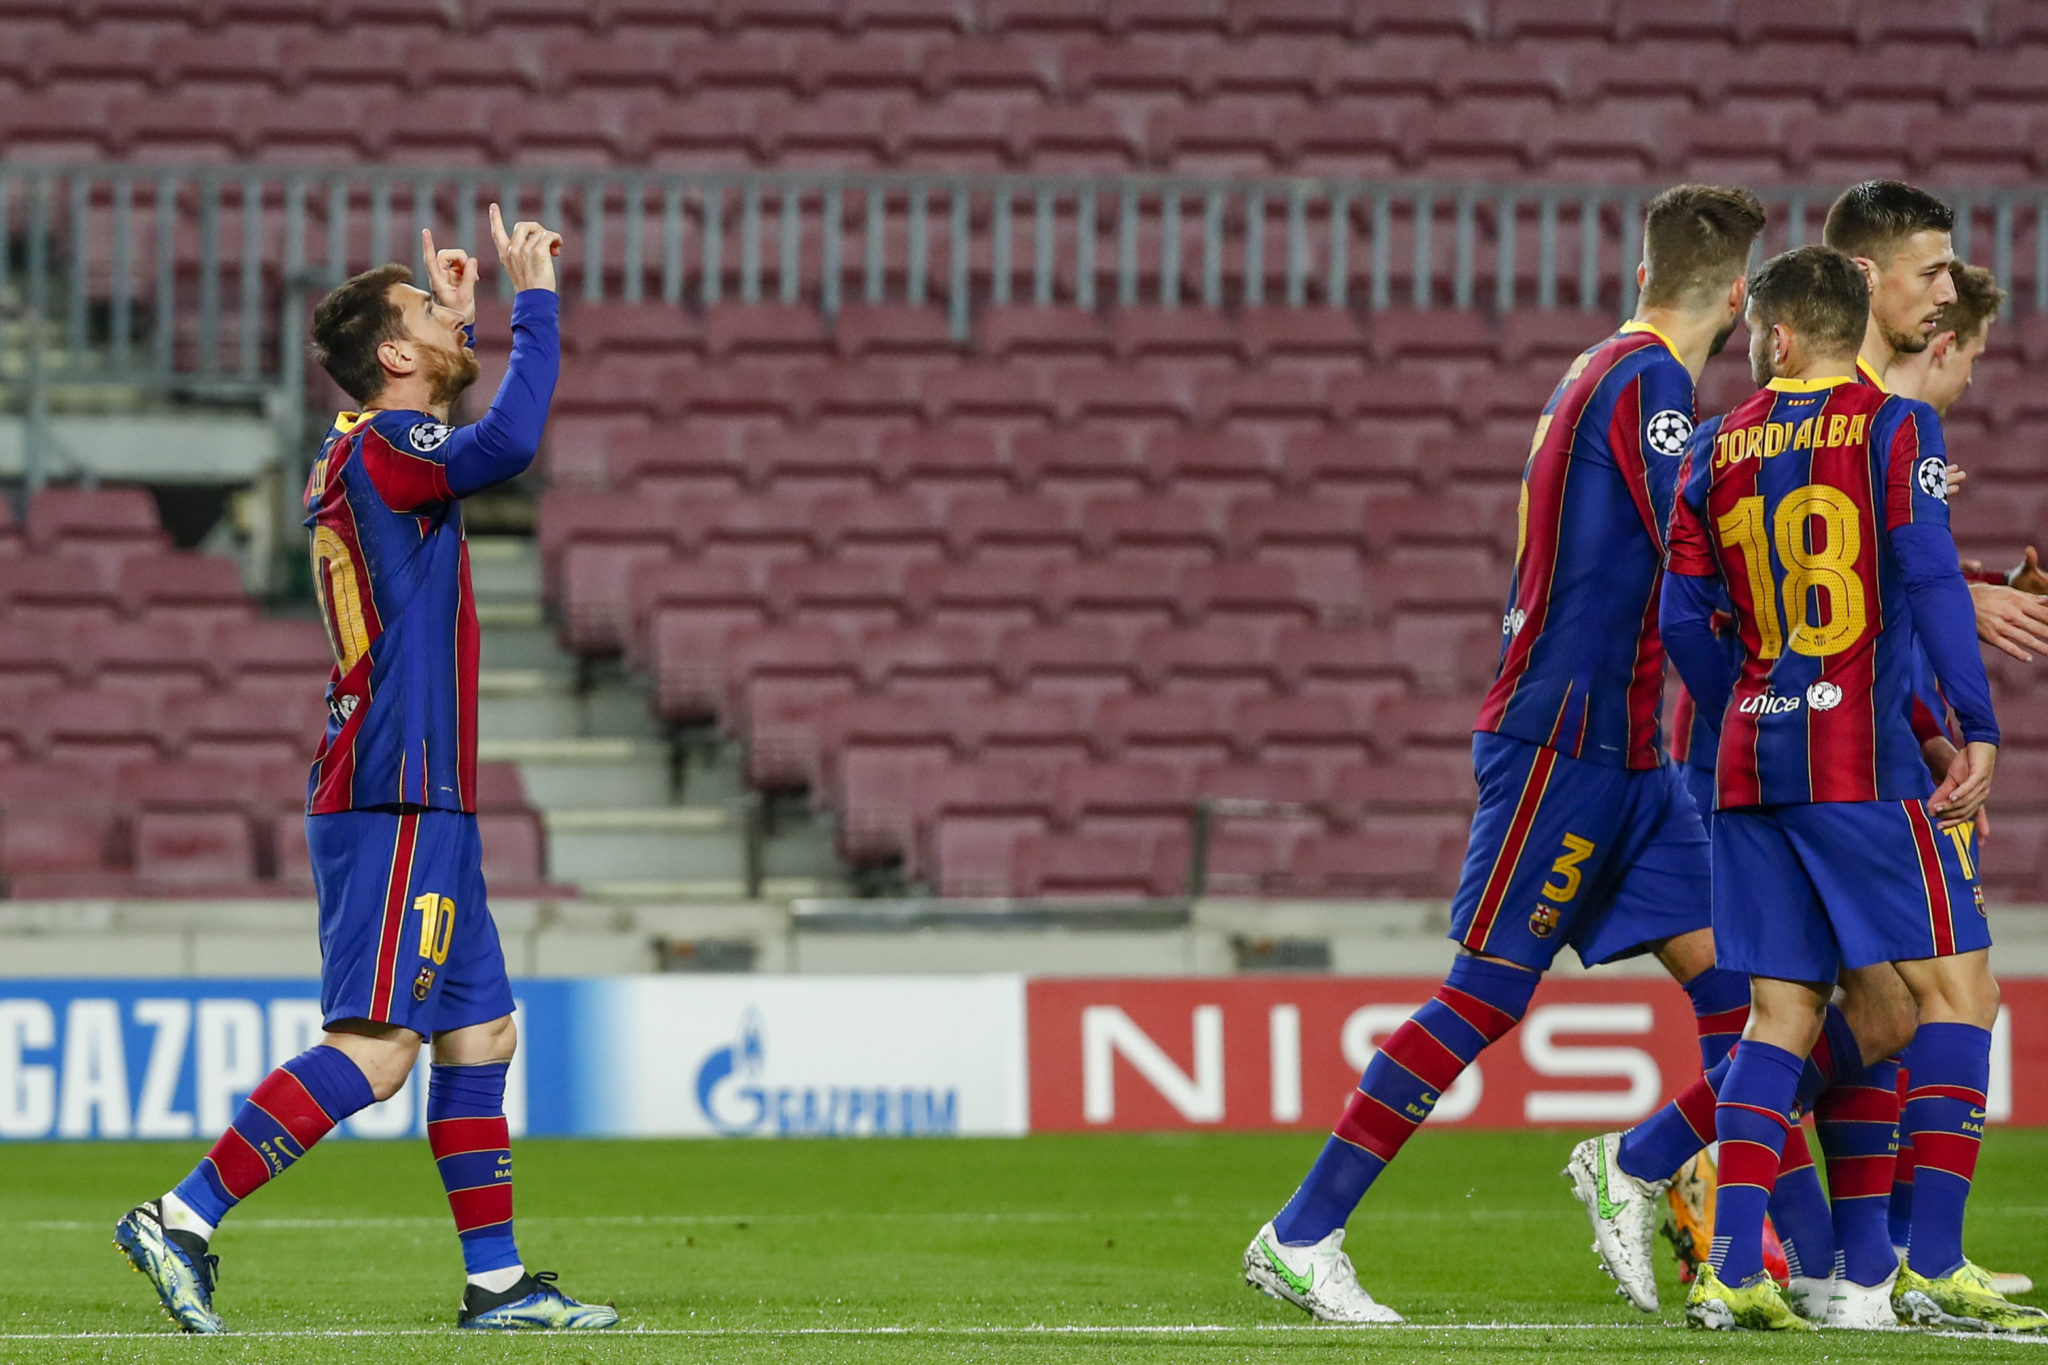 Messi celebrates after scoring against PSG